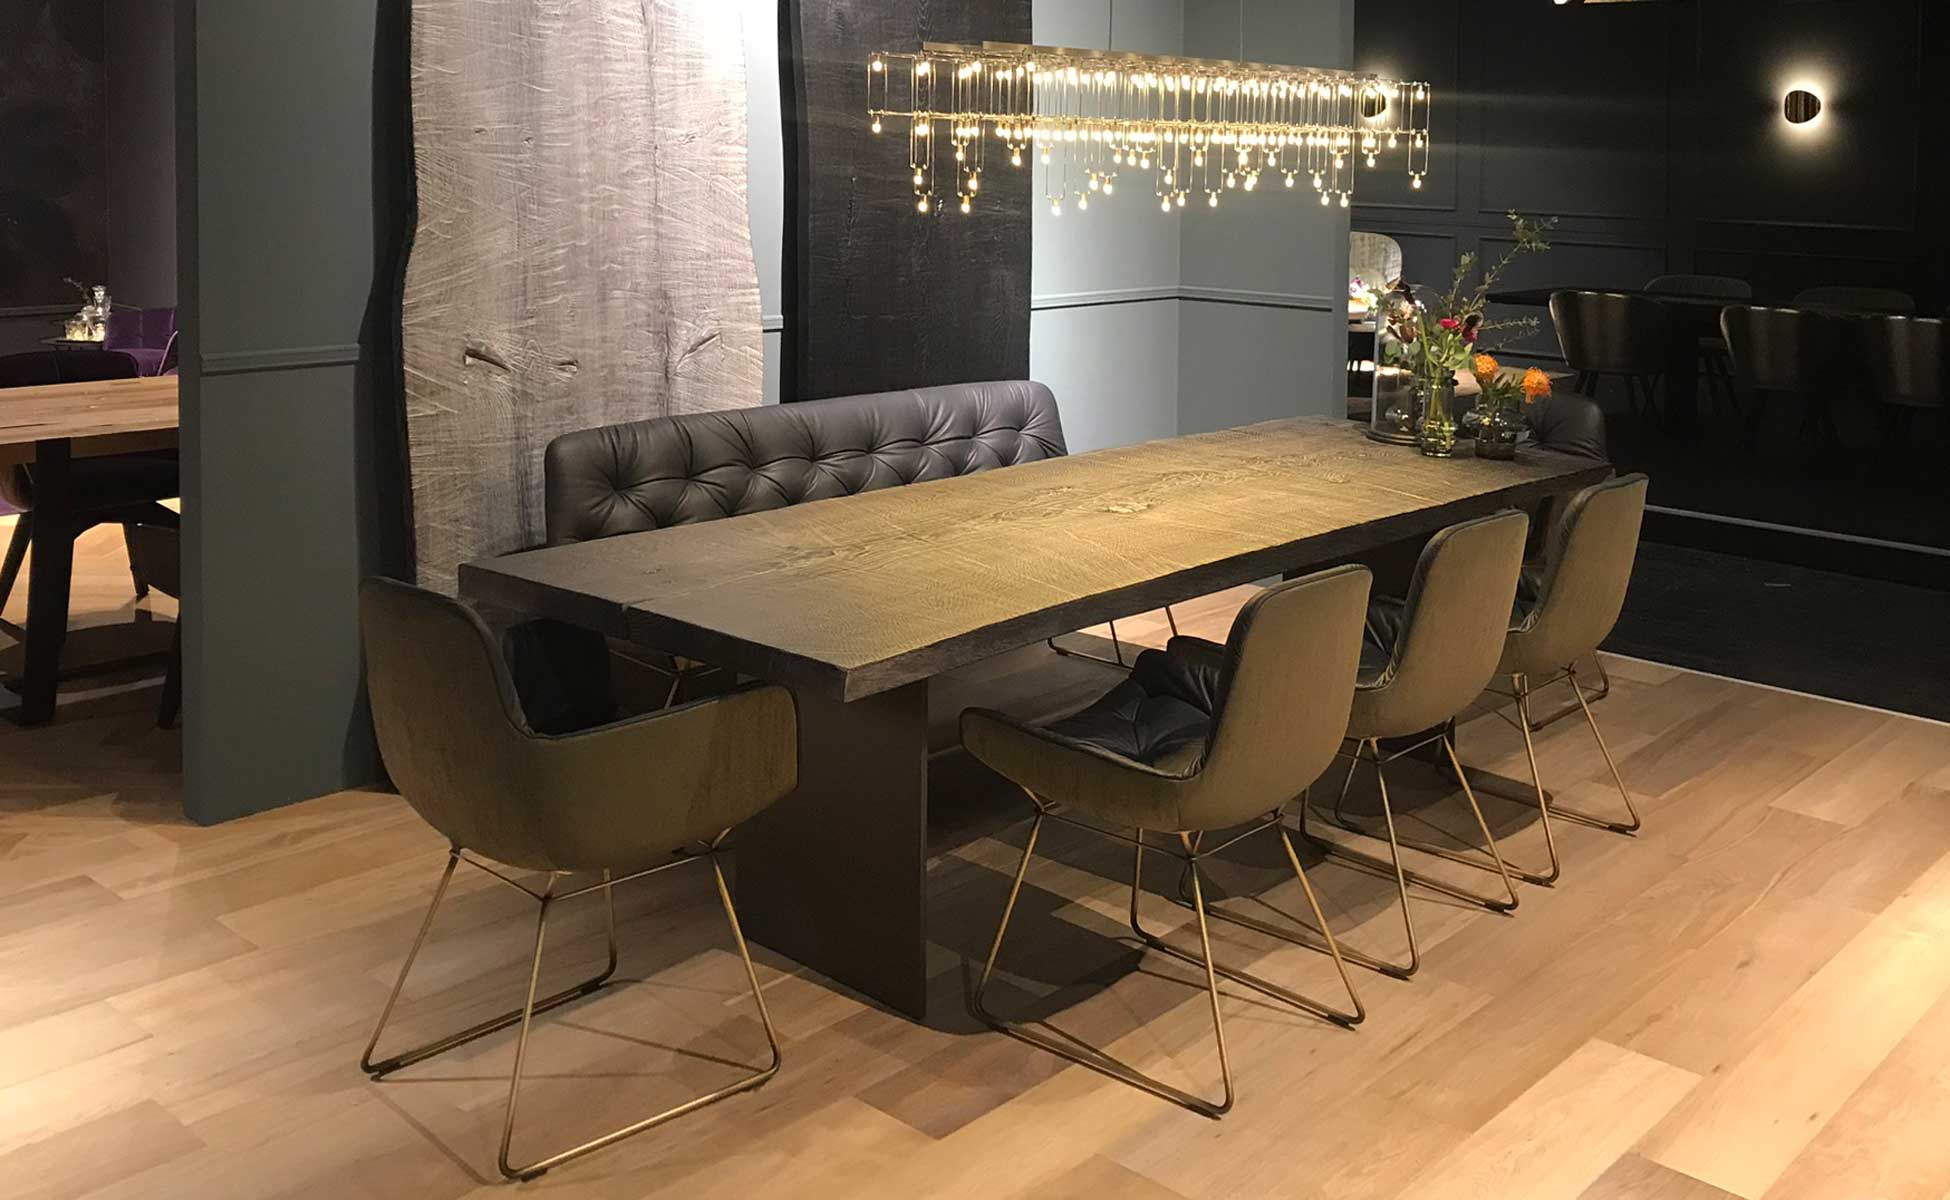 imm k ln 2018 freifrau janua vitra thonet interl bke steidten einrichten mit. Black Bedroom Furniture Sets. Home Design Ideas